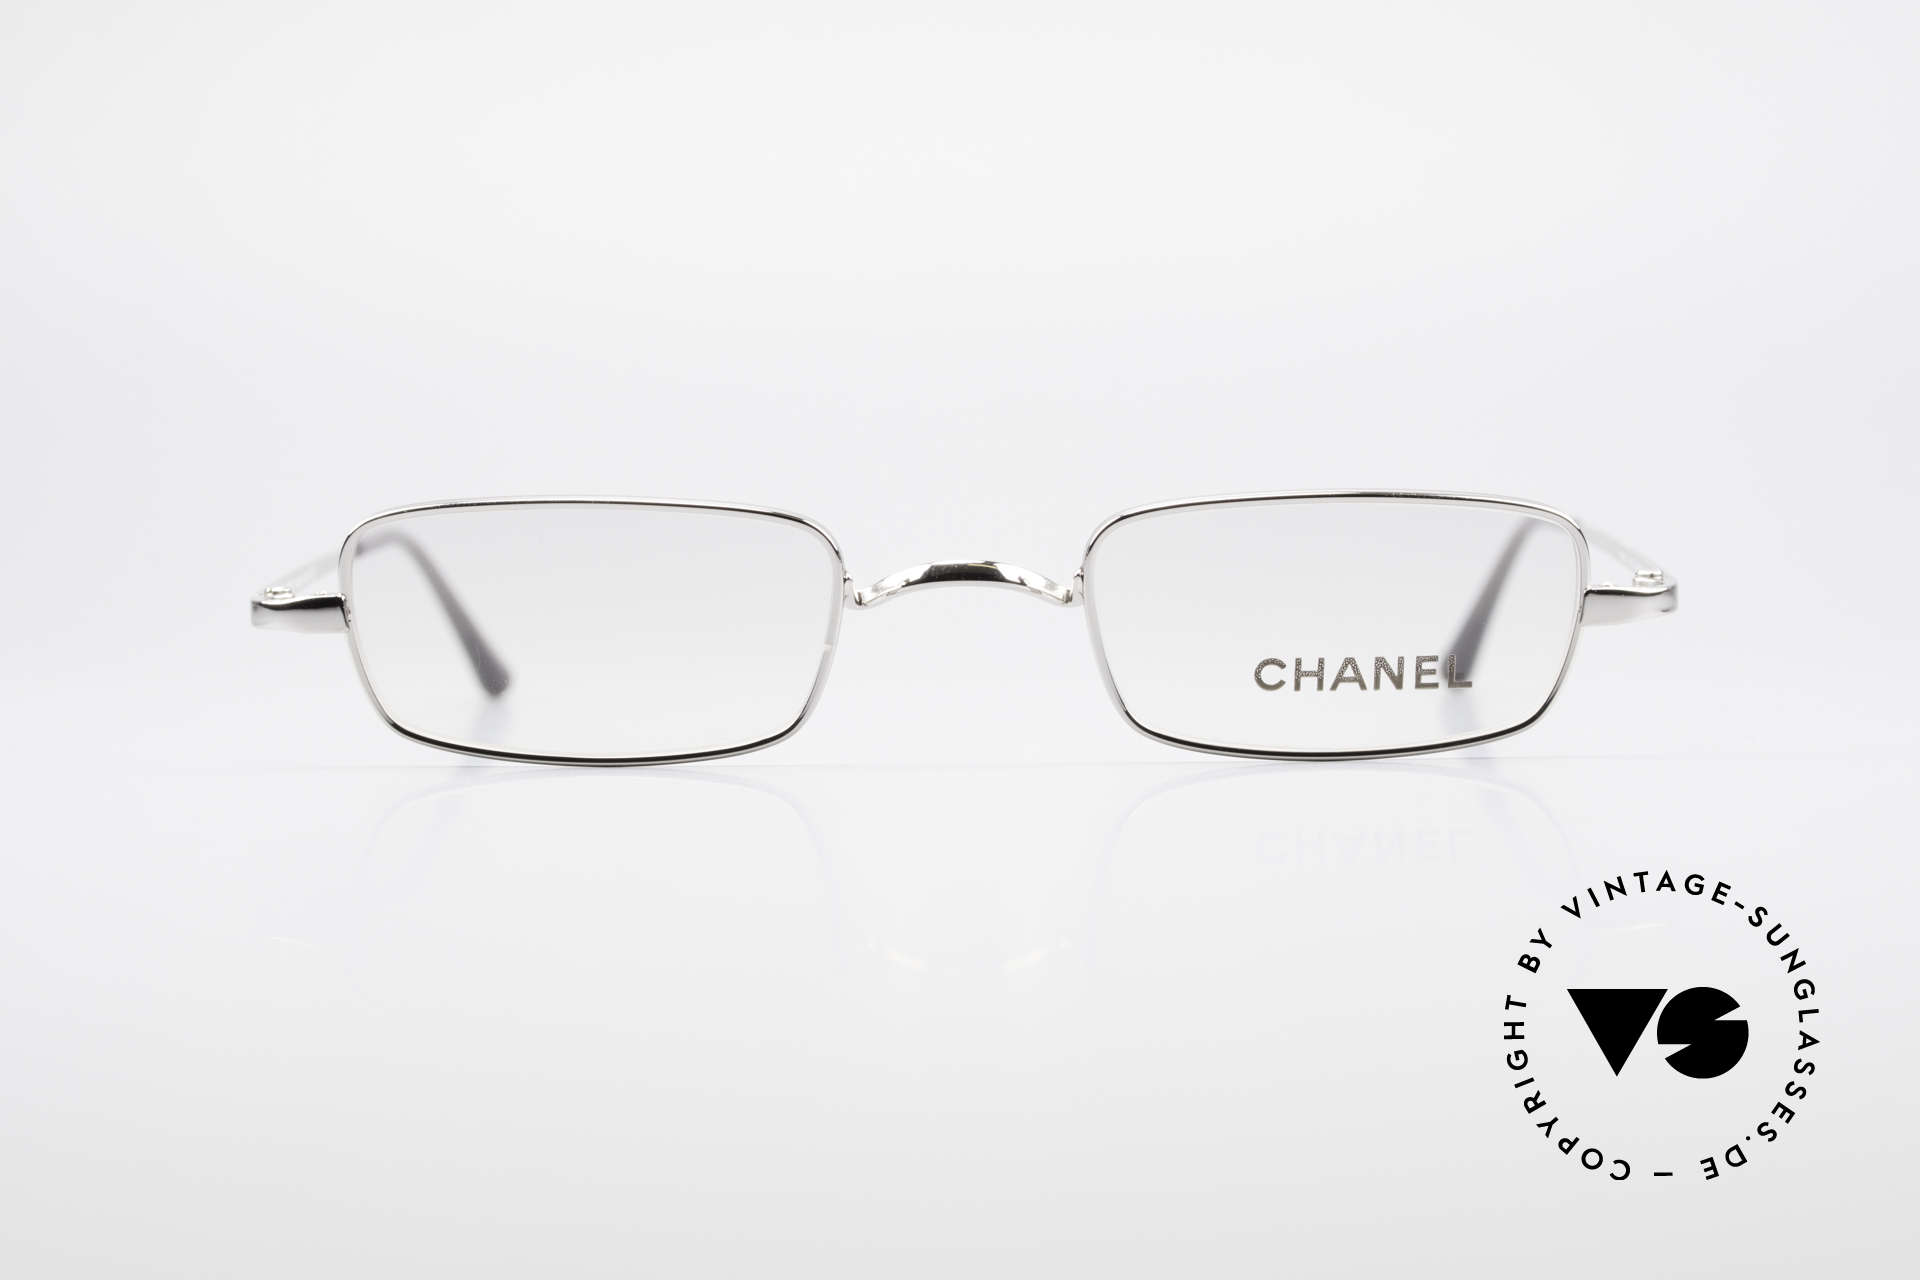 Chanel 2038 Pink Luxury Glasses Clip On, Size: small, Made for Women